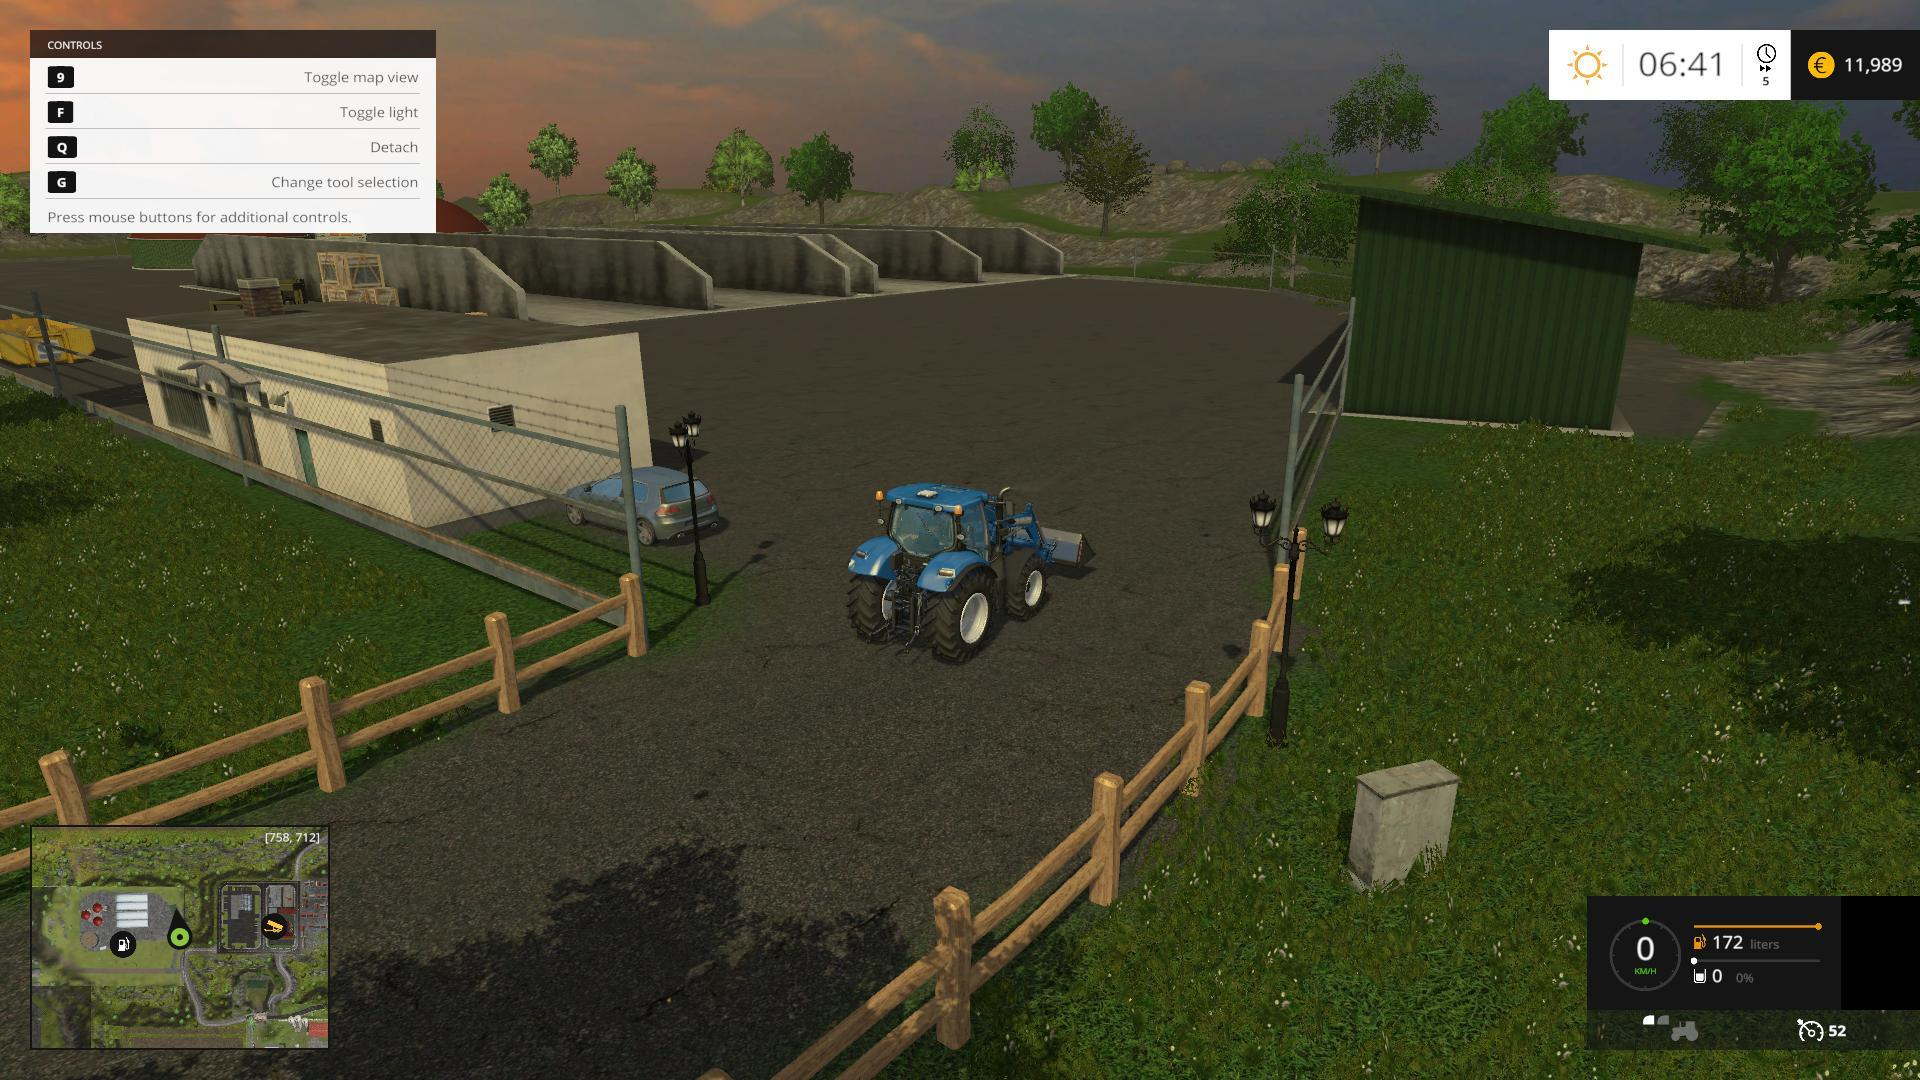 Big tony's map v1 - Farming simulator modification ...